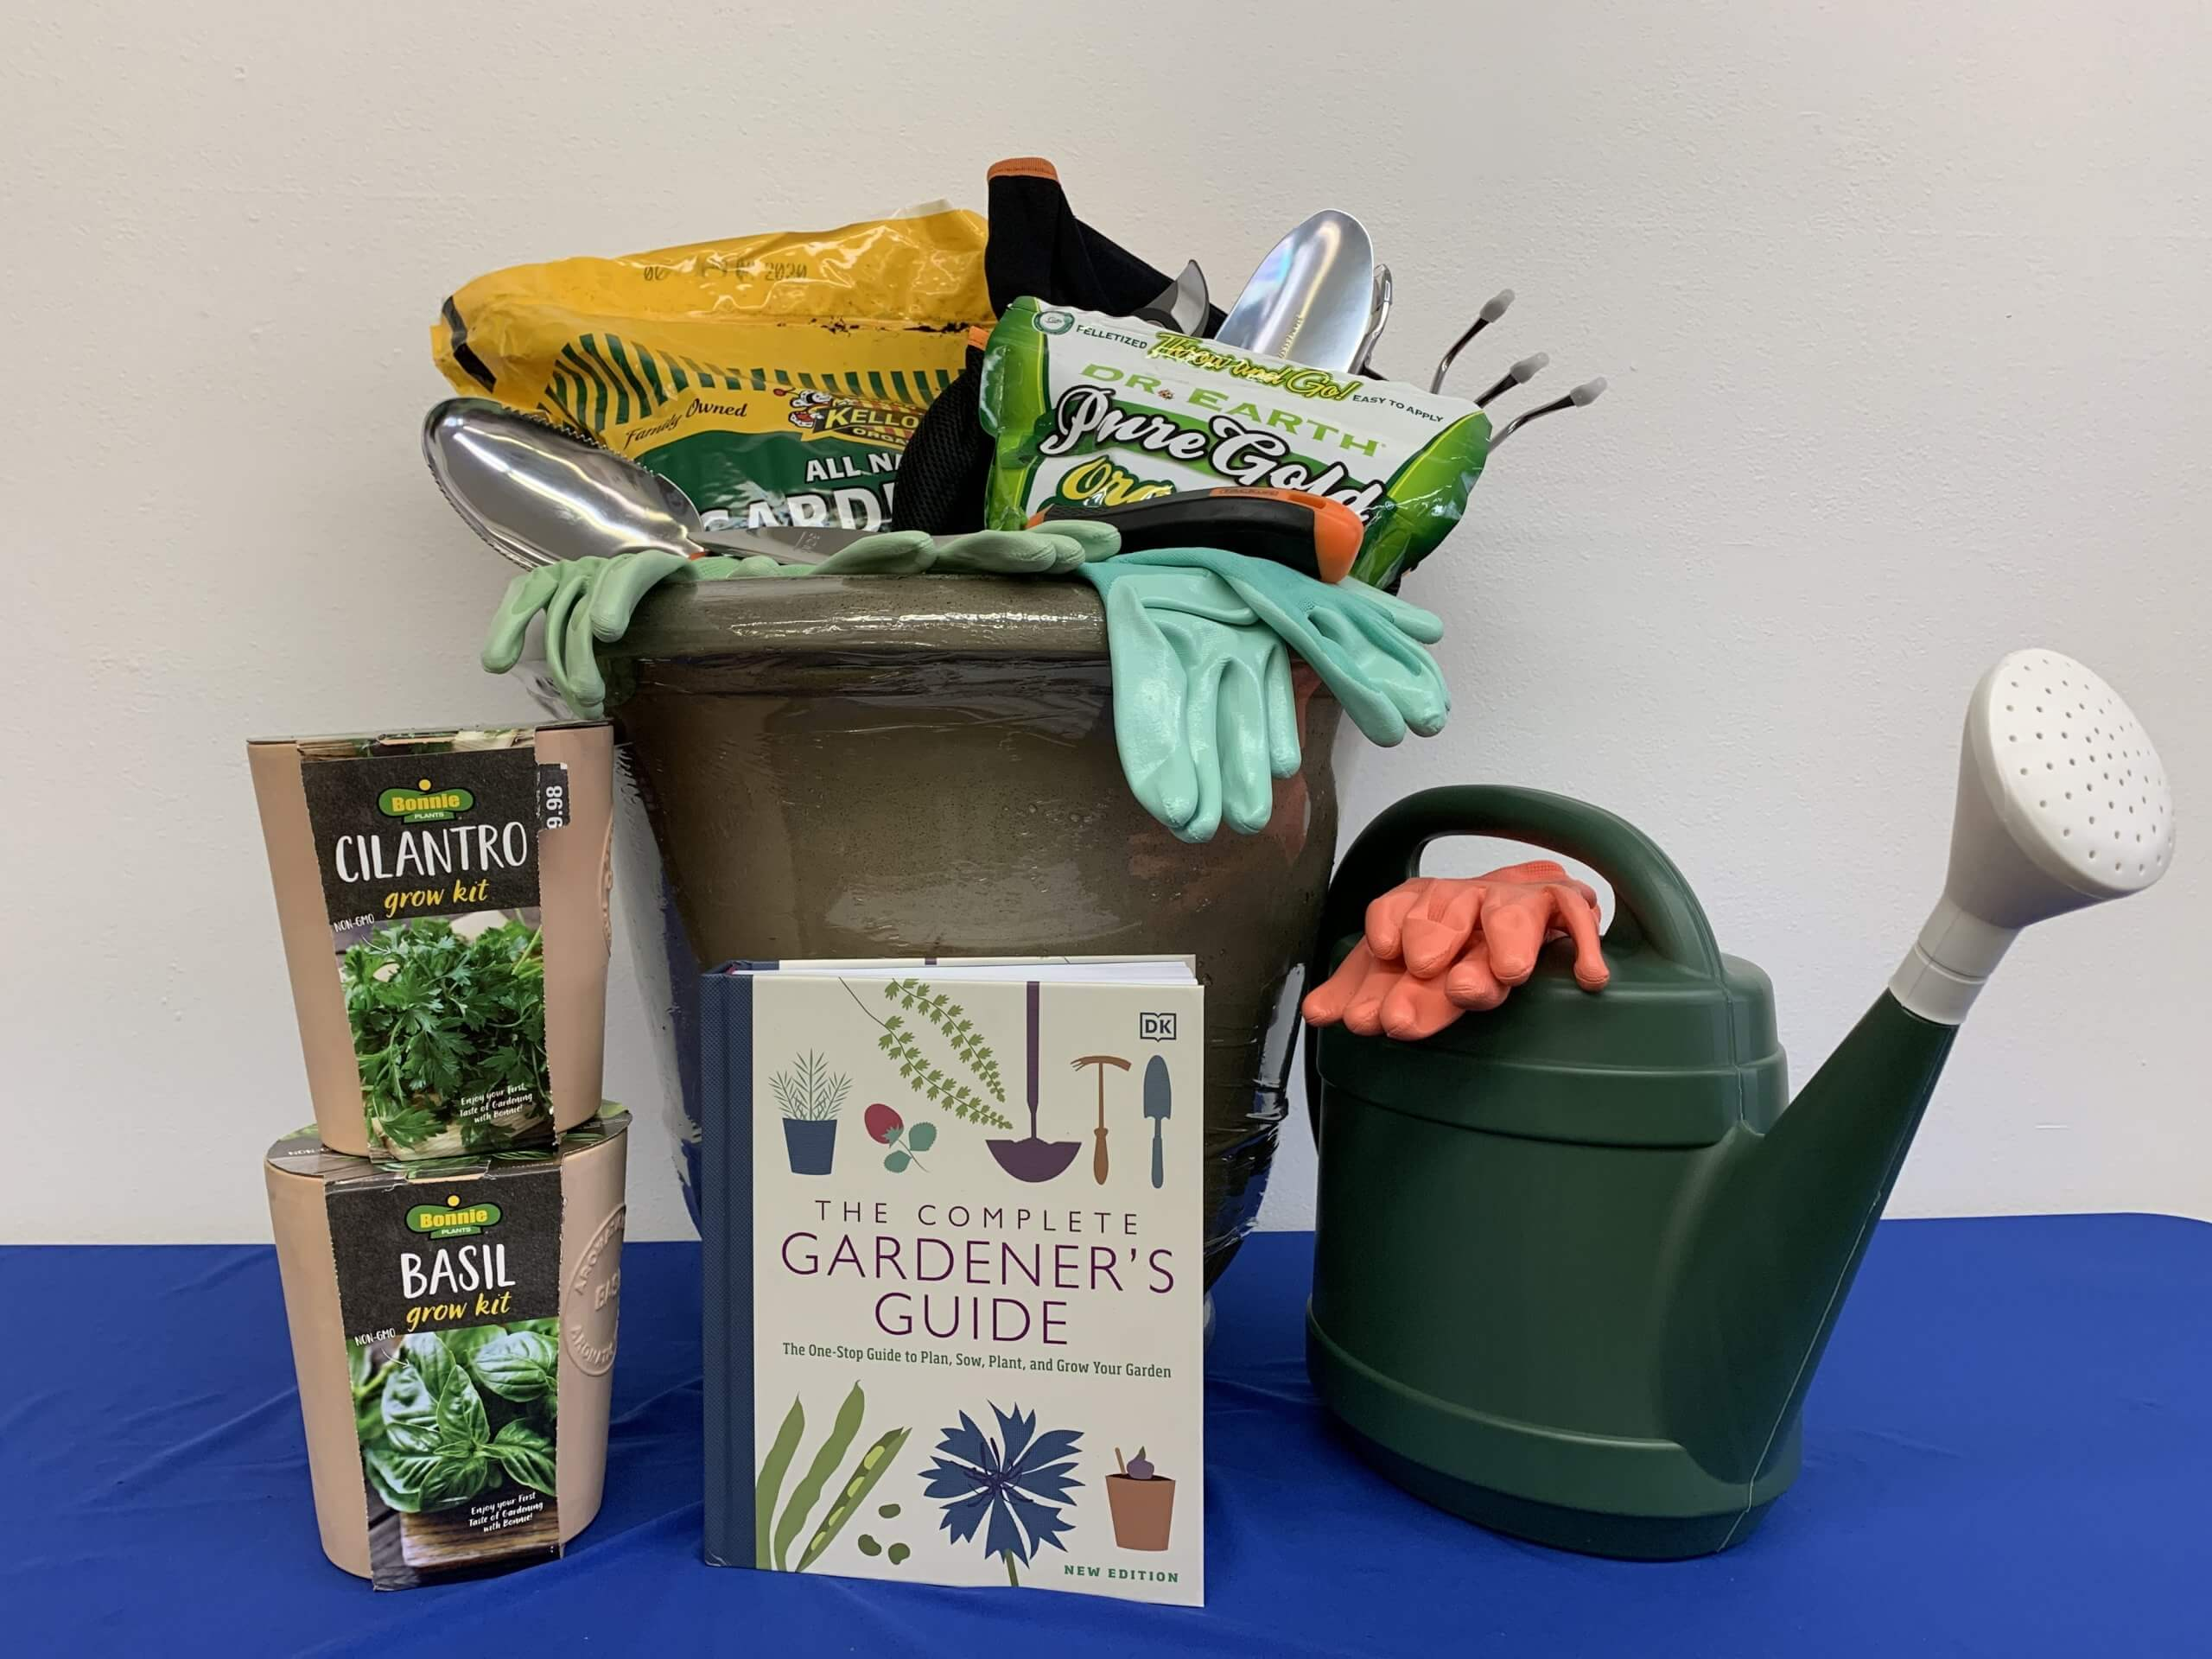 image of various garden items